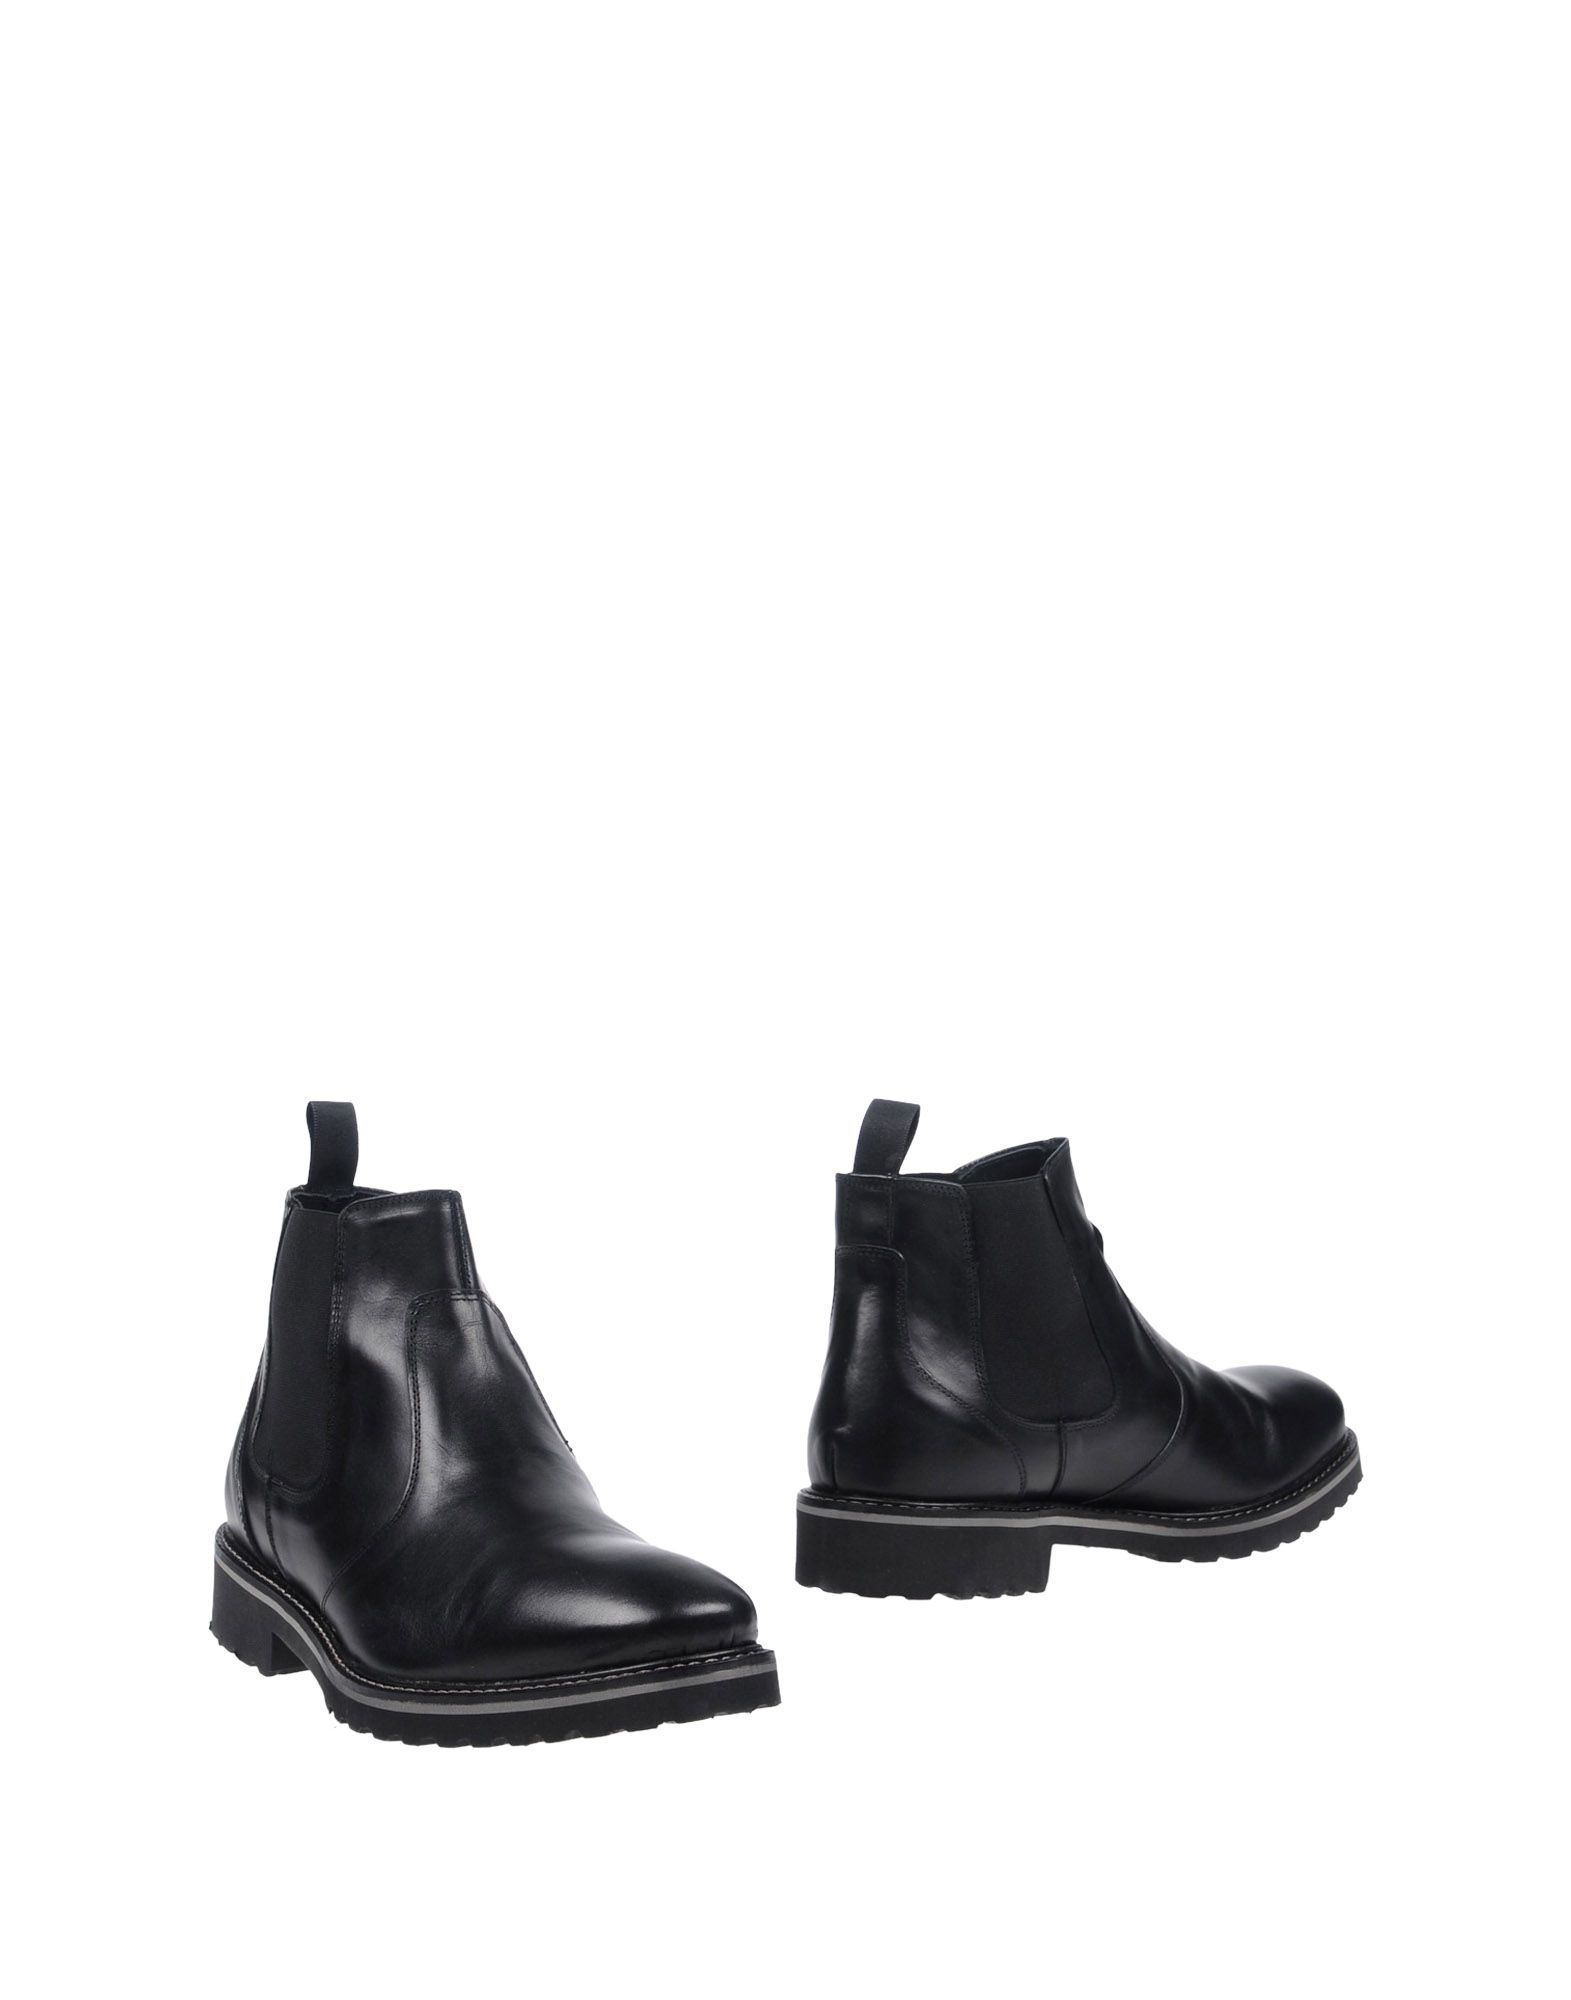 Bottine Guima Femme - Bottines Guima sur